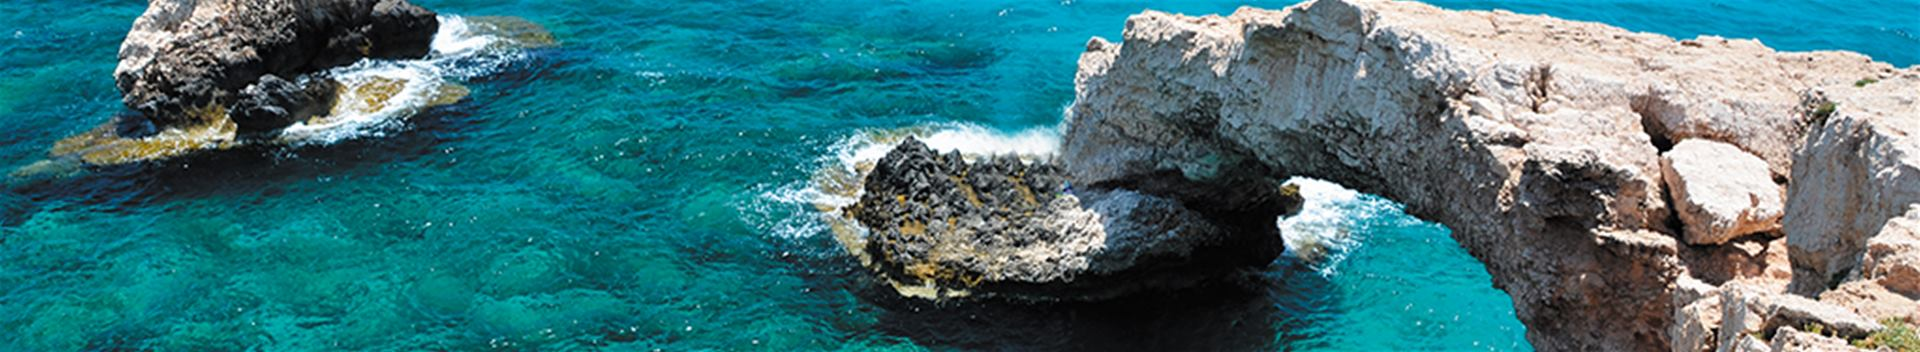 Find accommodation in Cyprus